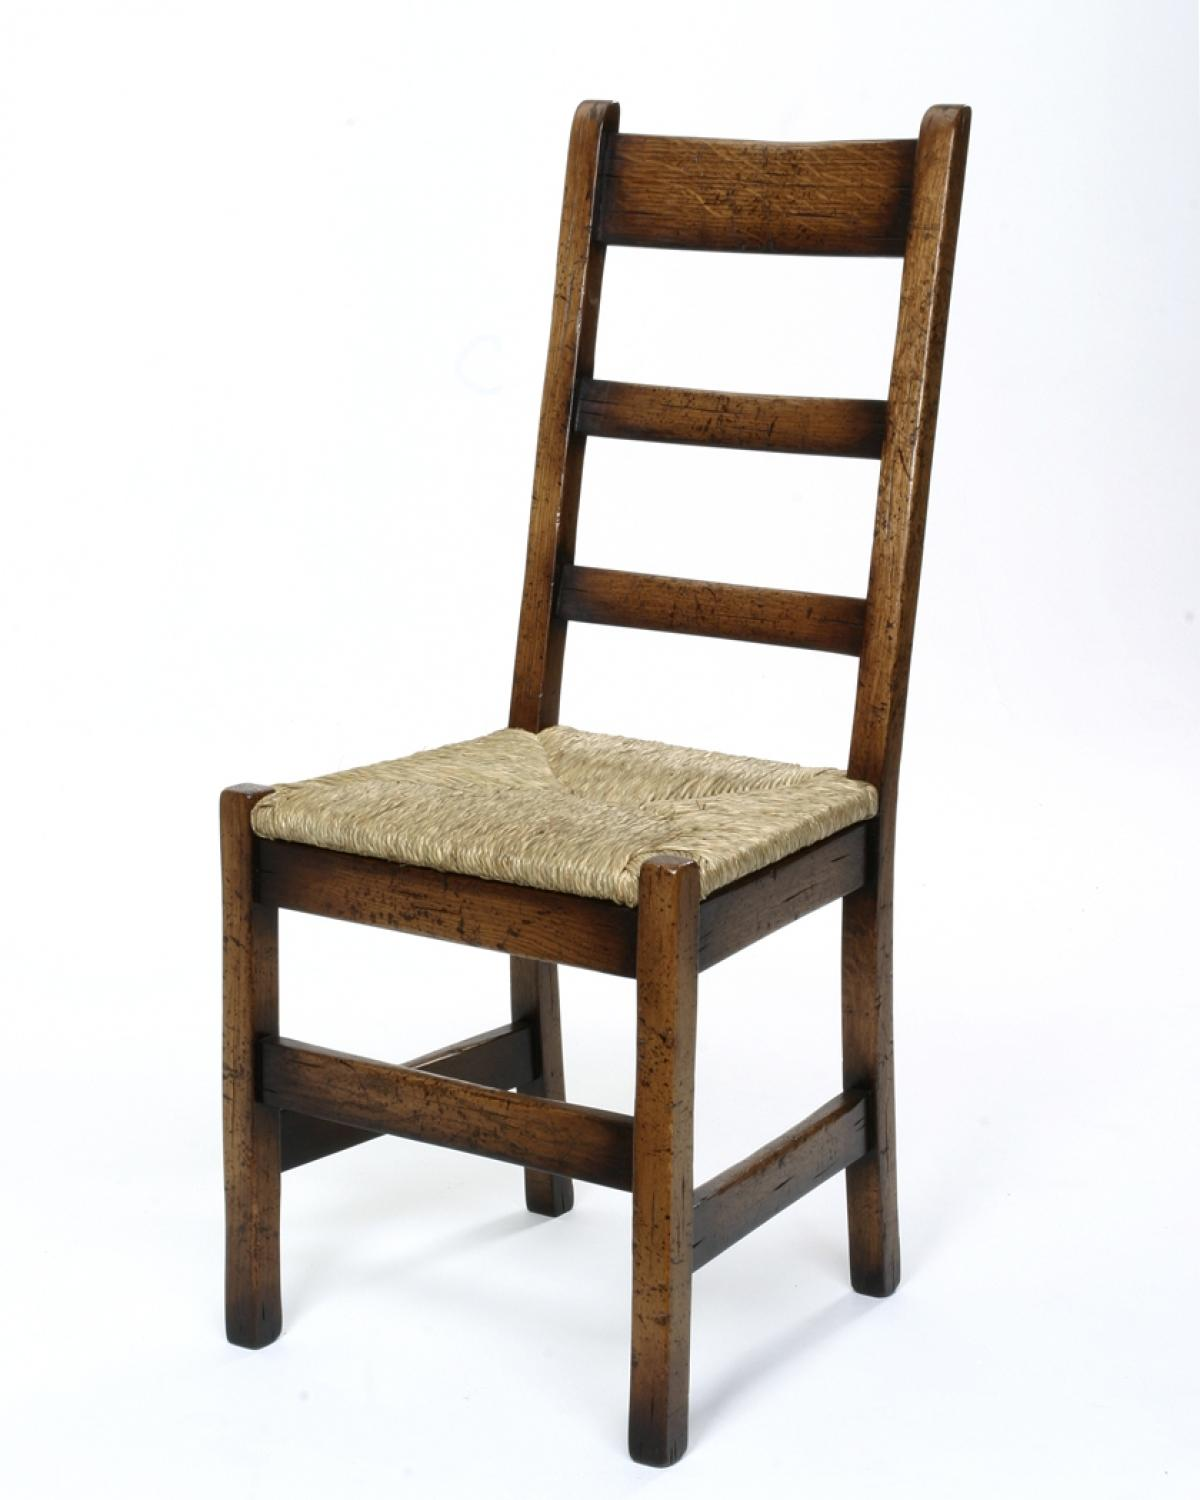 Oak Dining Chair - Contemporary Ladder